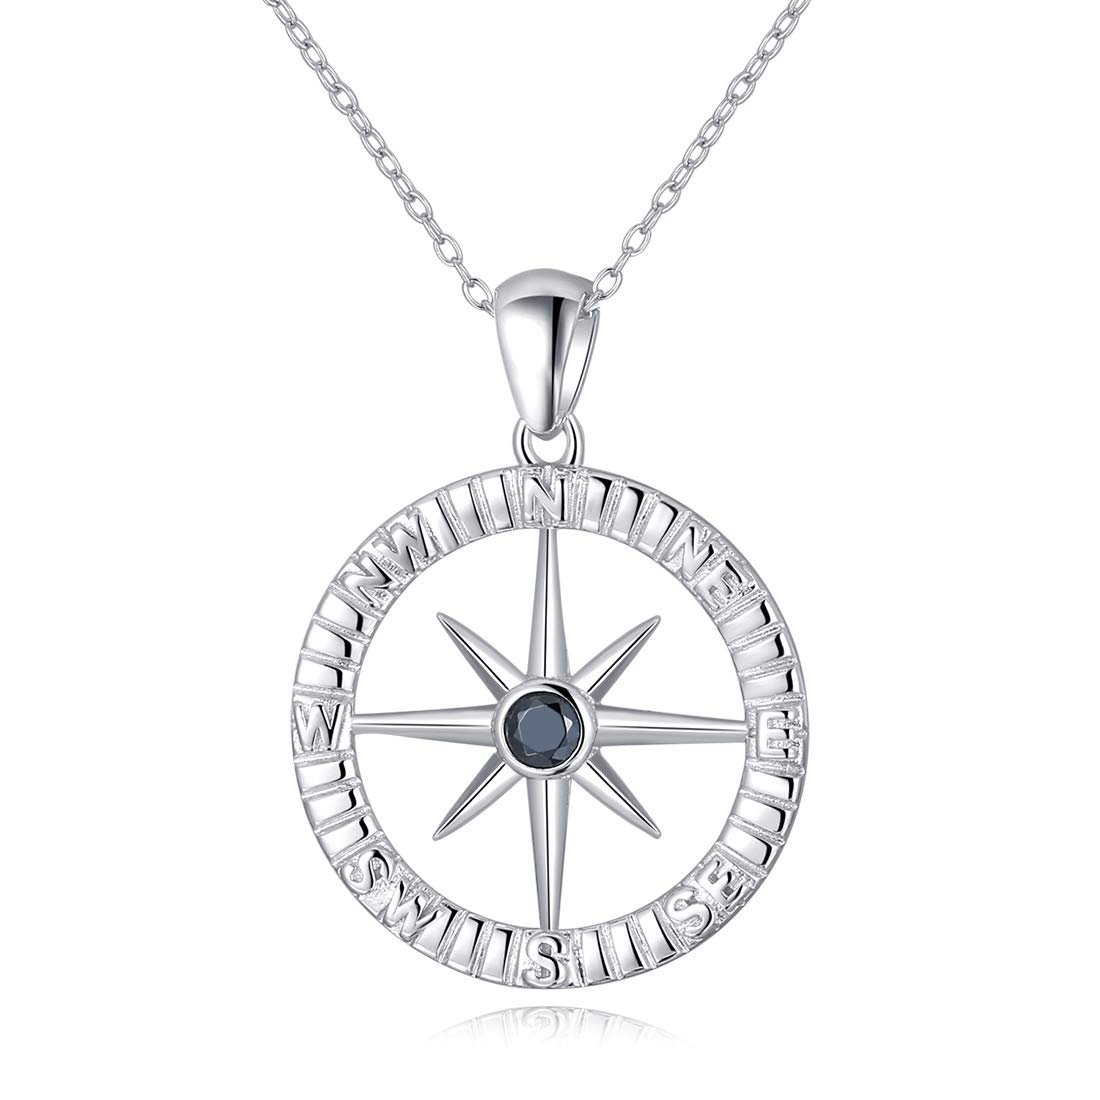 LAIMALA Compass Necklaces Best Friend Relationship Rhinestone Pendant Sterling Silver Jewelry